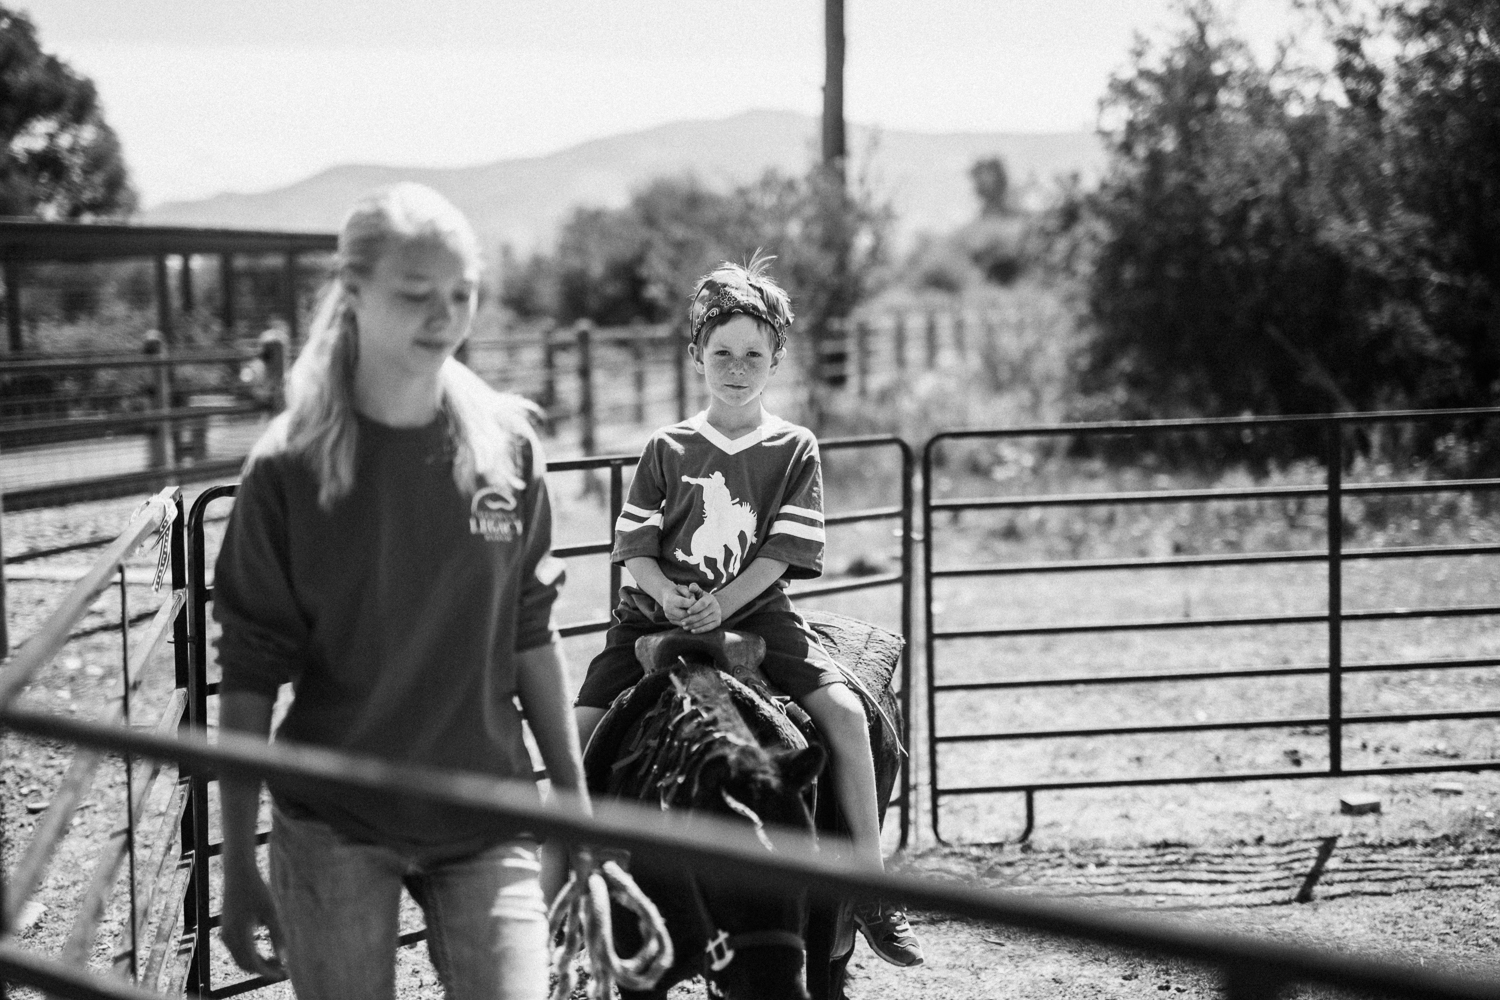 black-and-white-portrait-of-boy-riding-miniature-pony-at-legacy-ranch-heber-utah